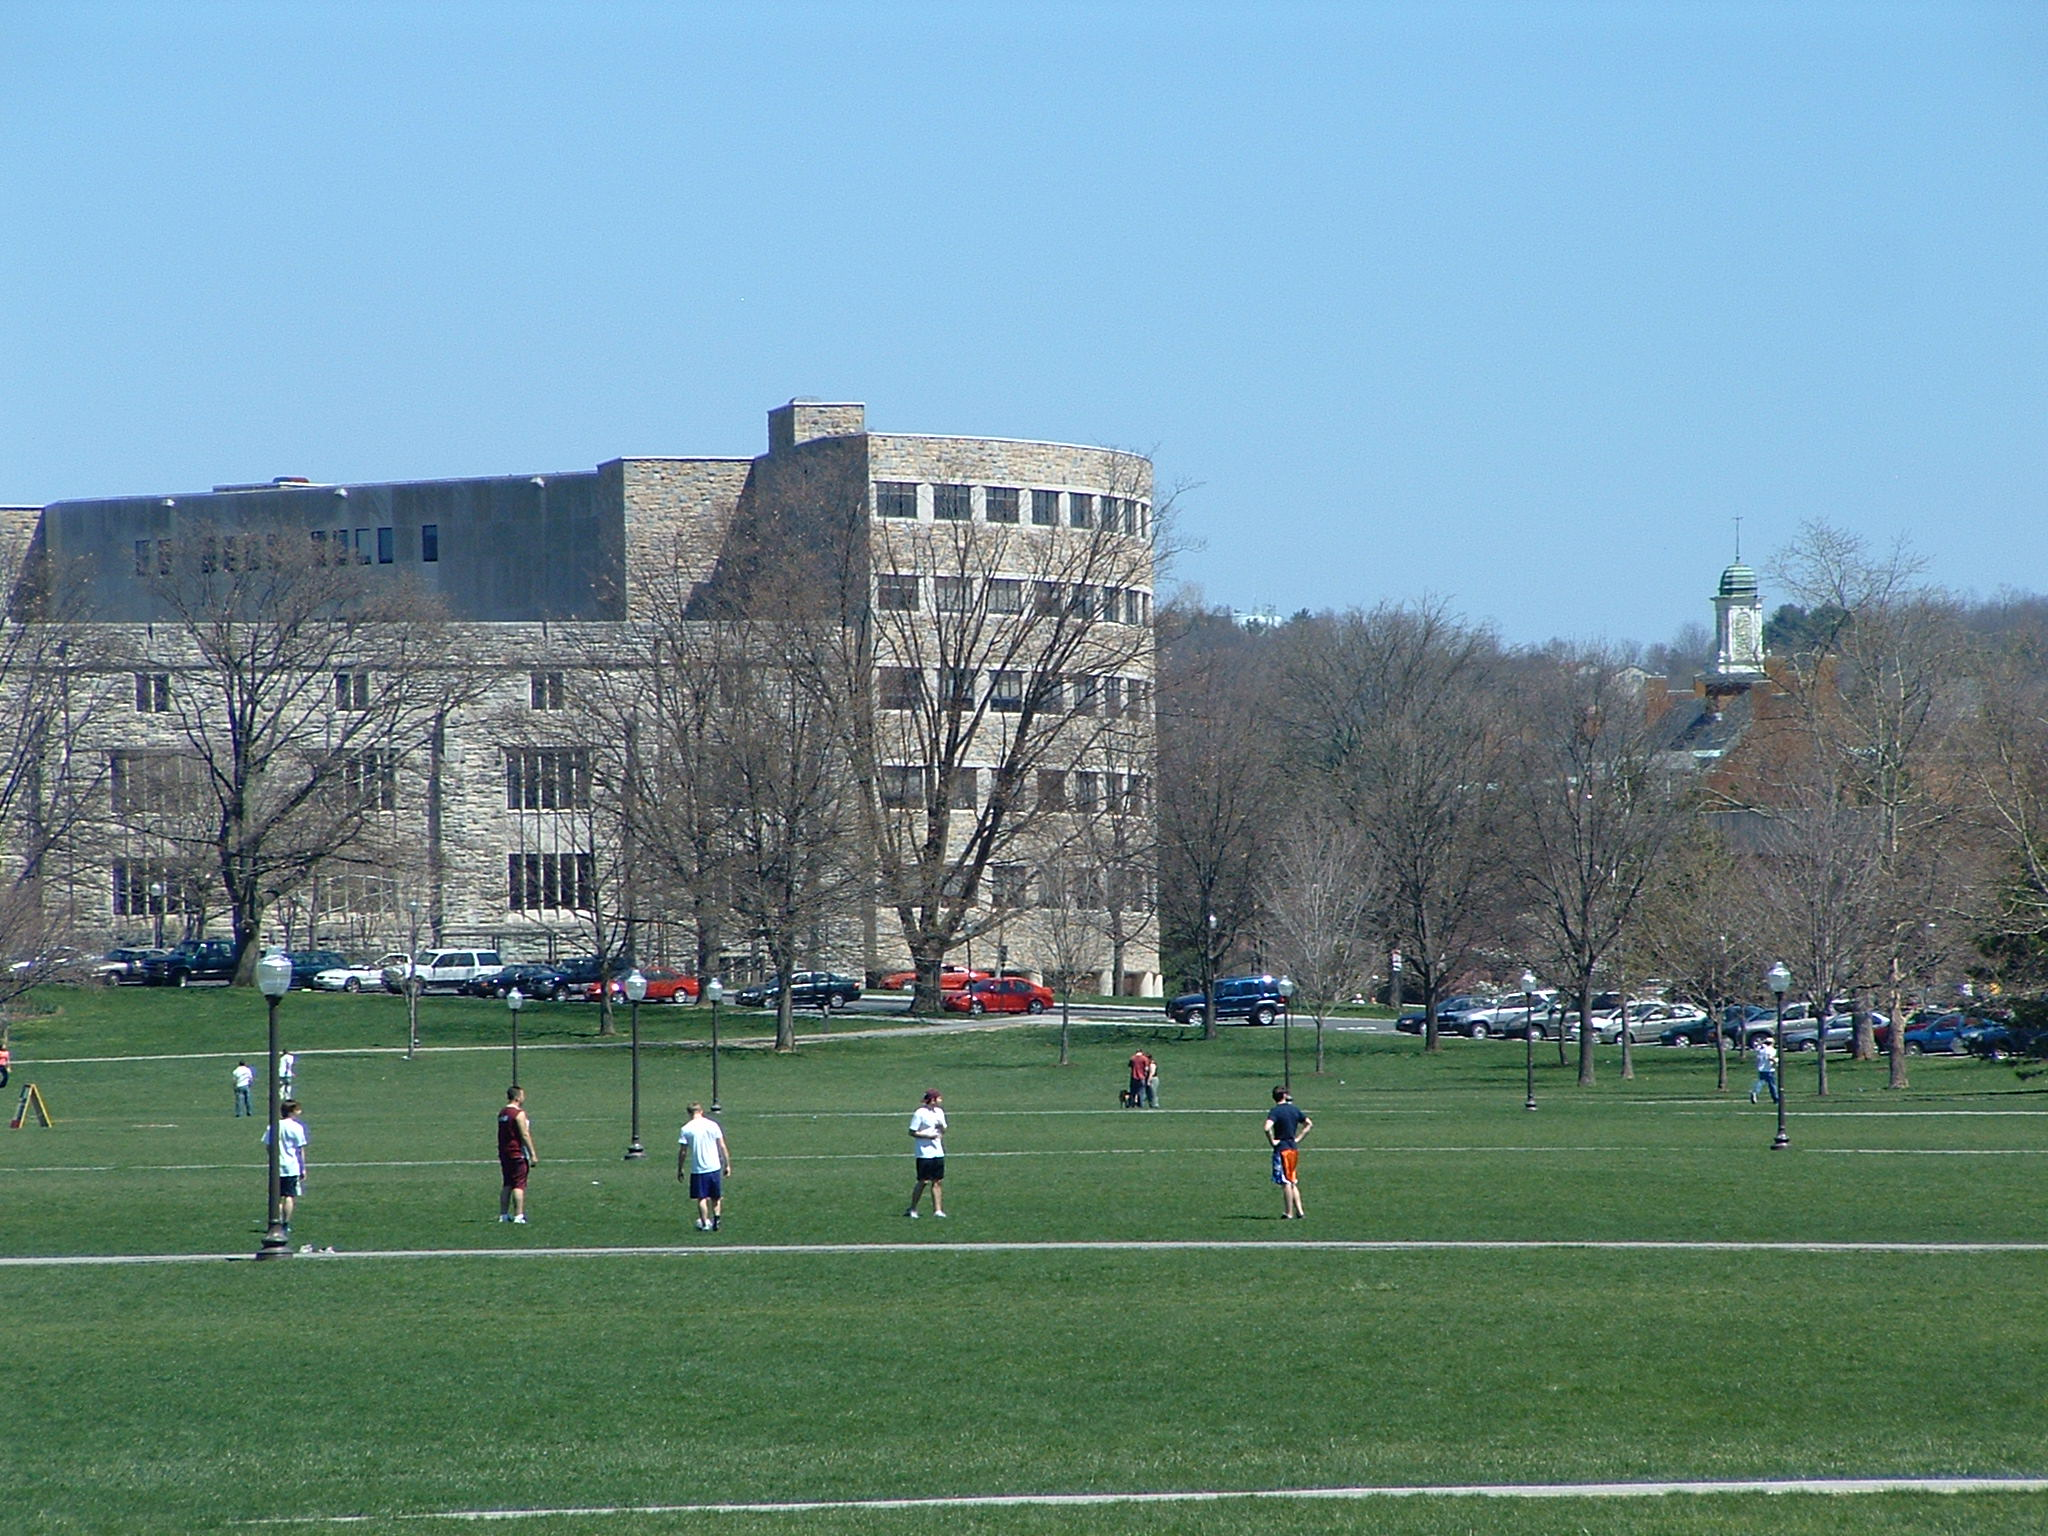 (2005) View of Virginia Tech's Newman Library from the drillfield; image by Buridan - Own work, Public Domain, https://commons.wikimedia.org/w/index.php?curid=102798